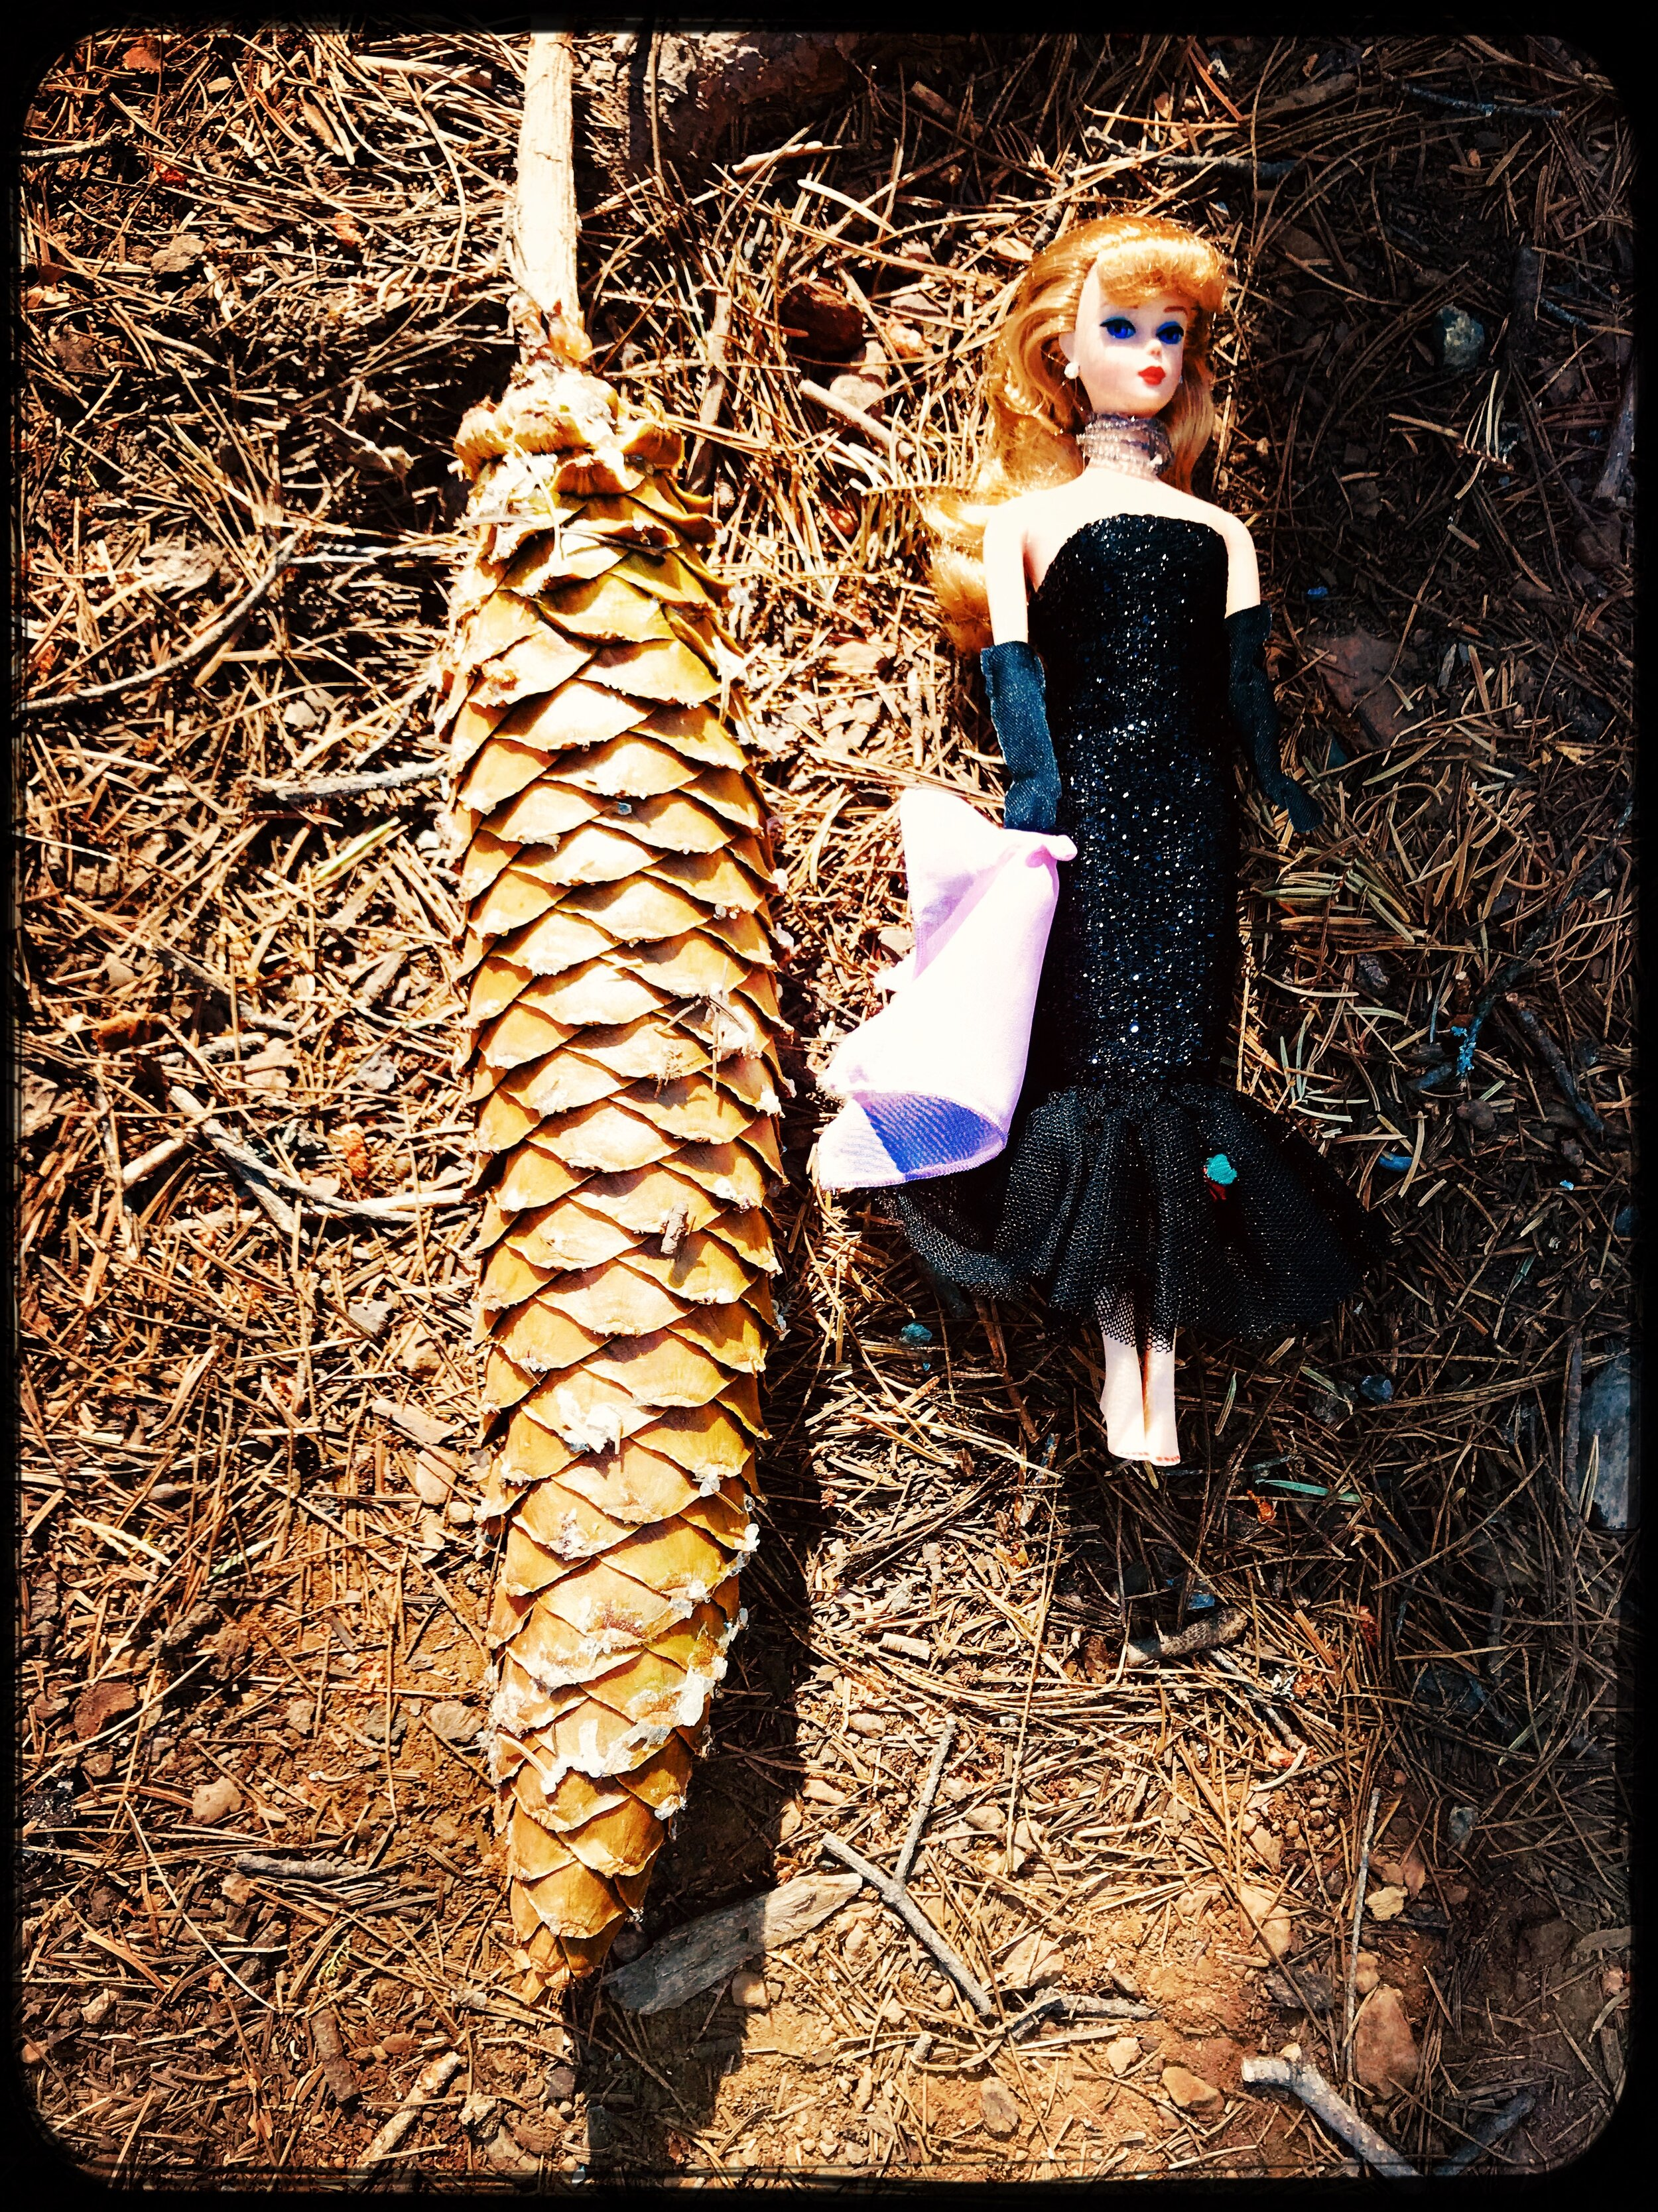 Look how big this pinecone is compared to Barbie (she never dresses appropriately for roughing it)!